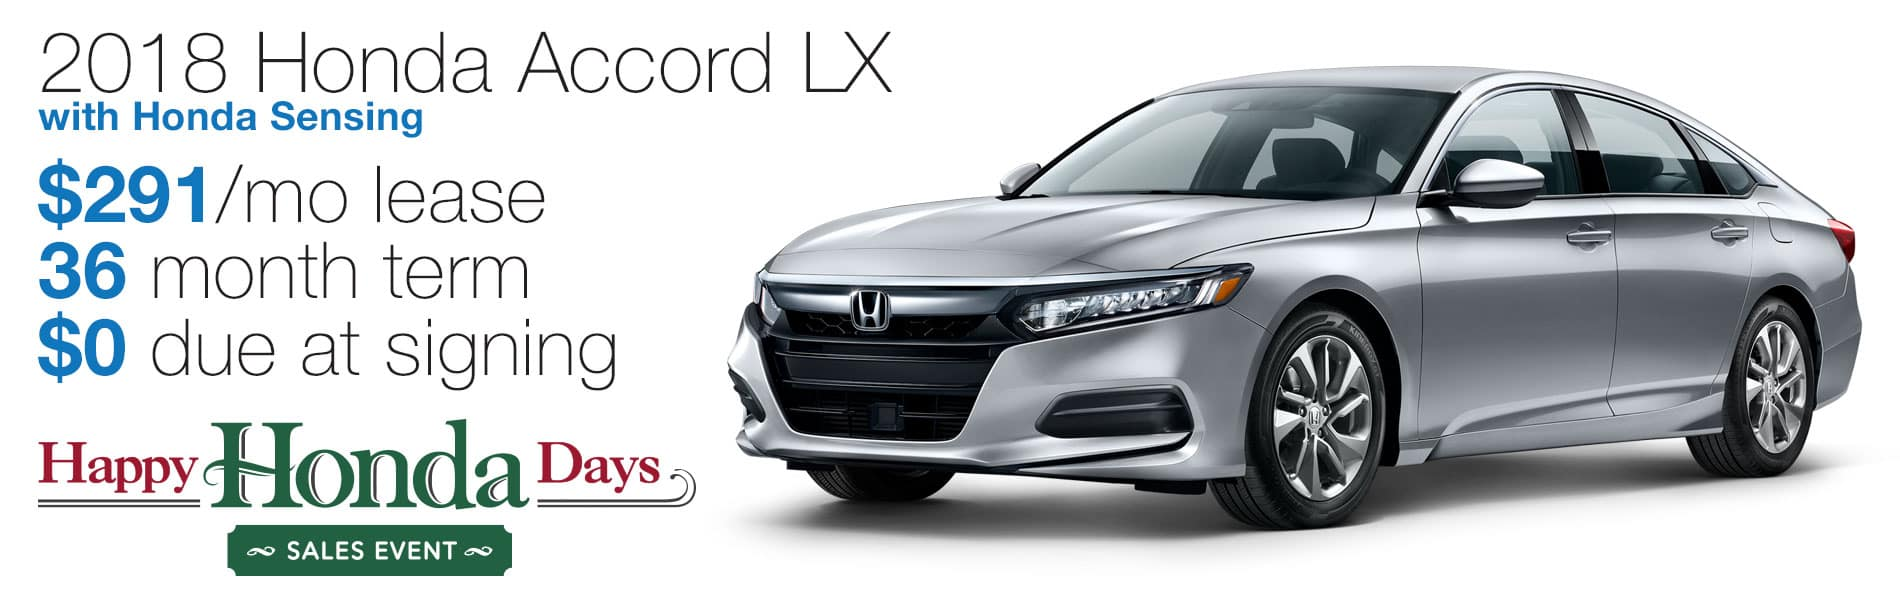 Lease a 2018 Honda Accord LX for $291 per month lease with $0 due at signing